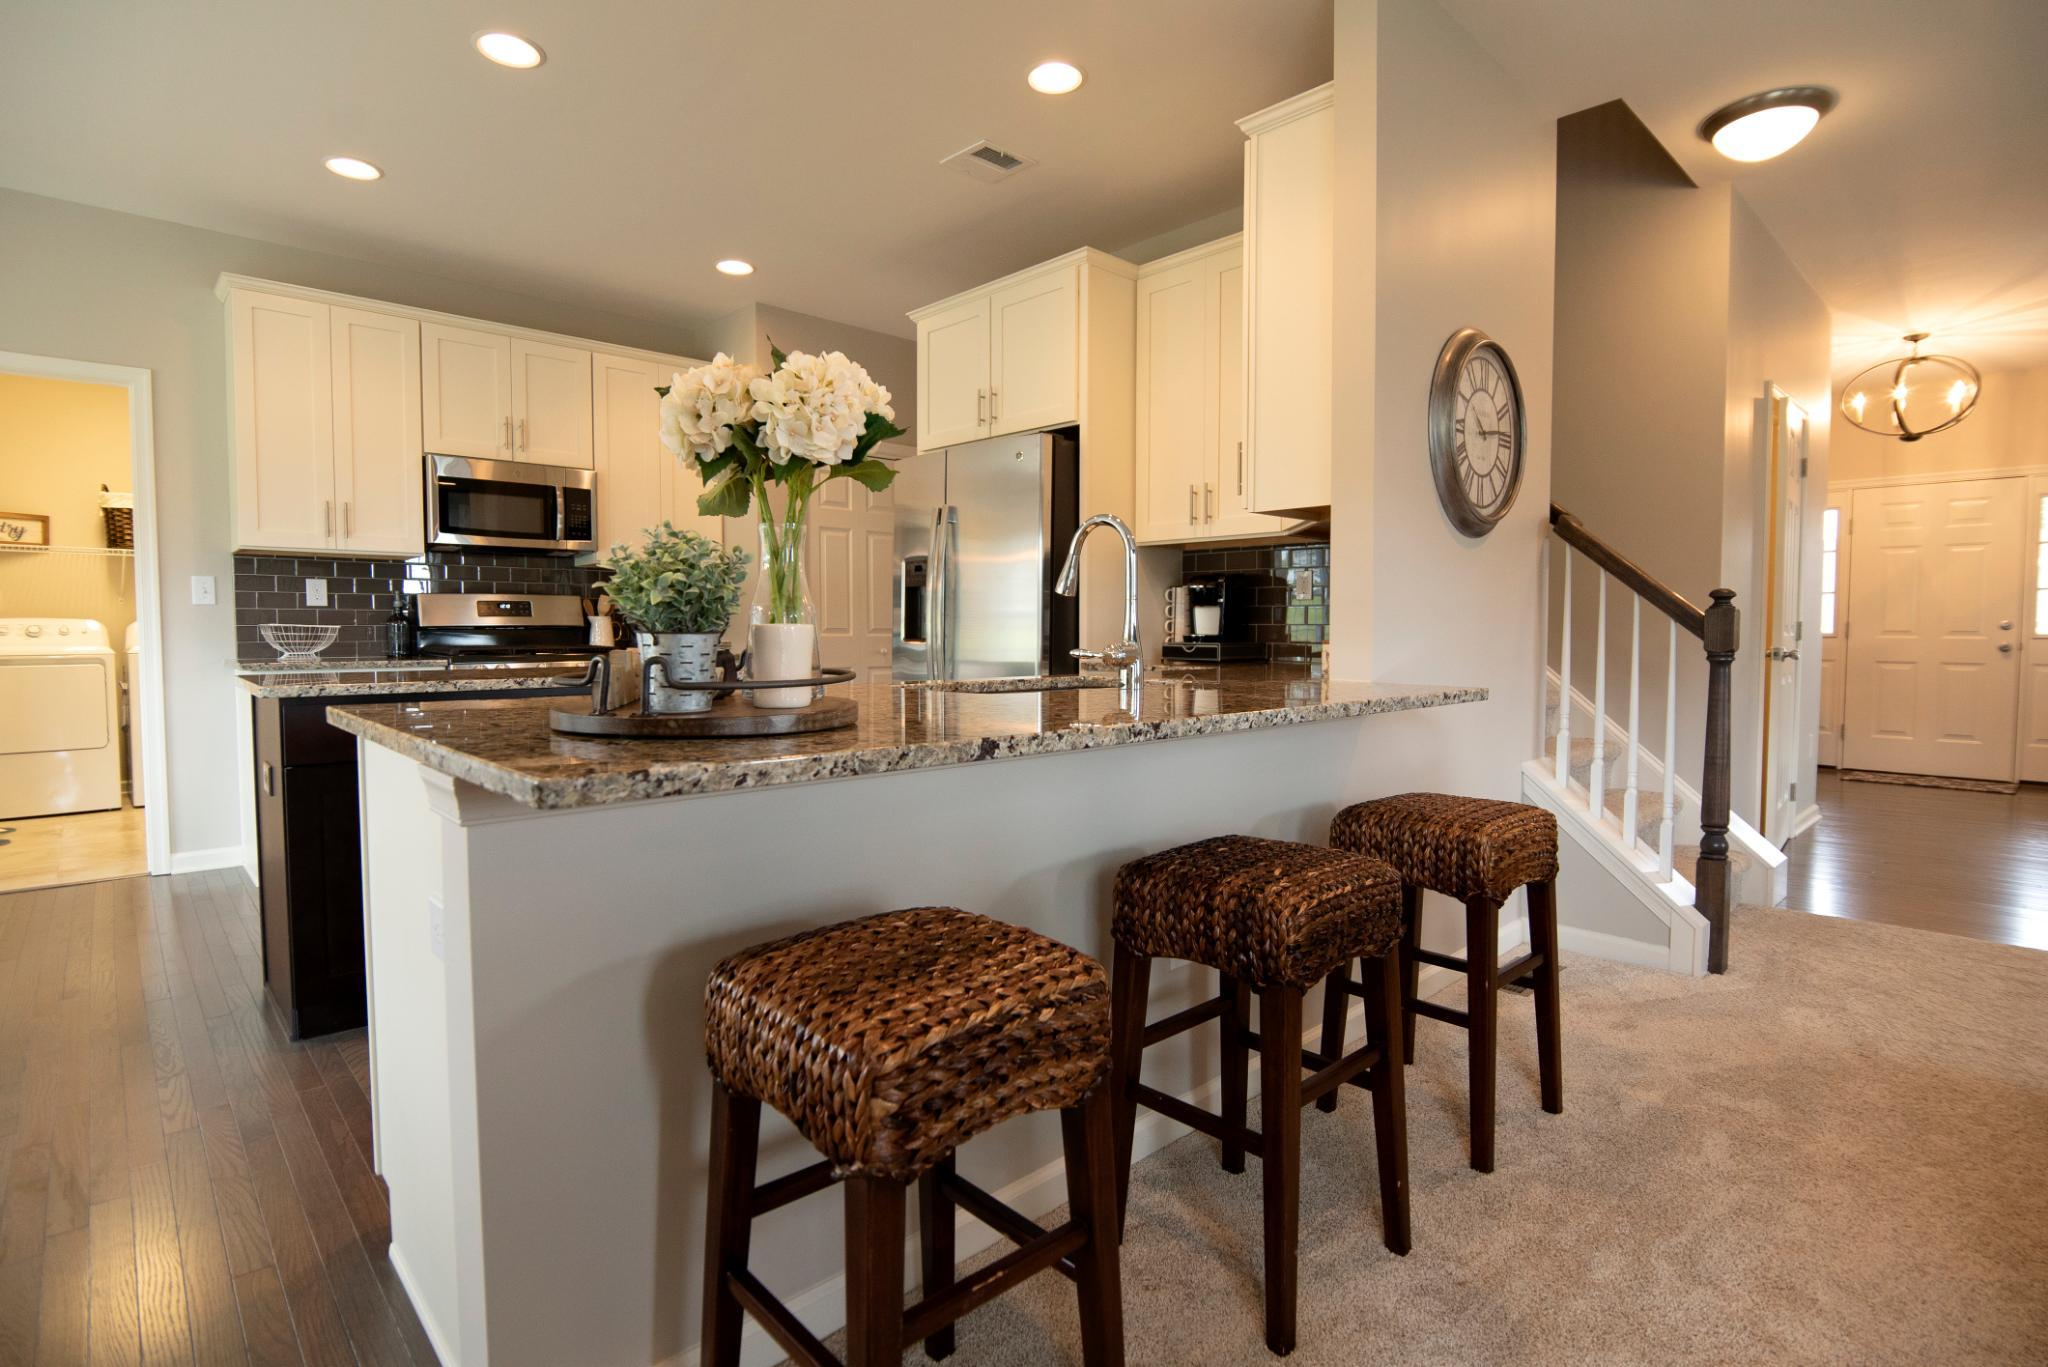 Kitchen featured in the Kingston Country By Tuskes Homes in Allentown-Bethlehem, PA